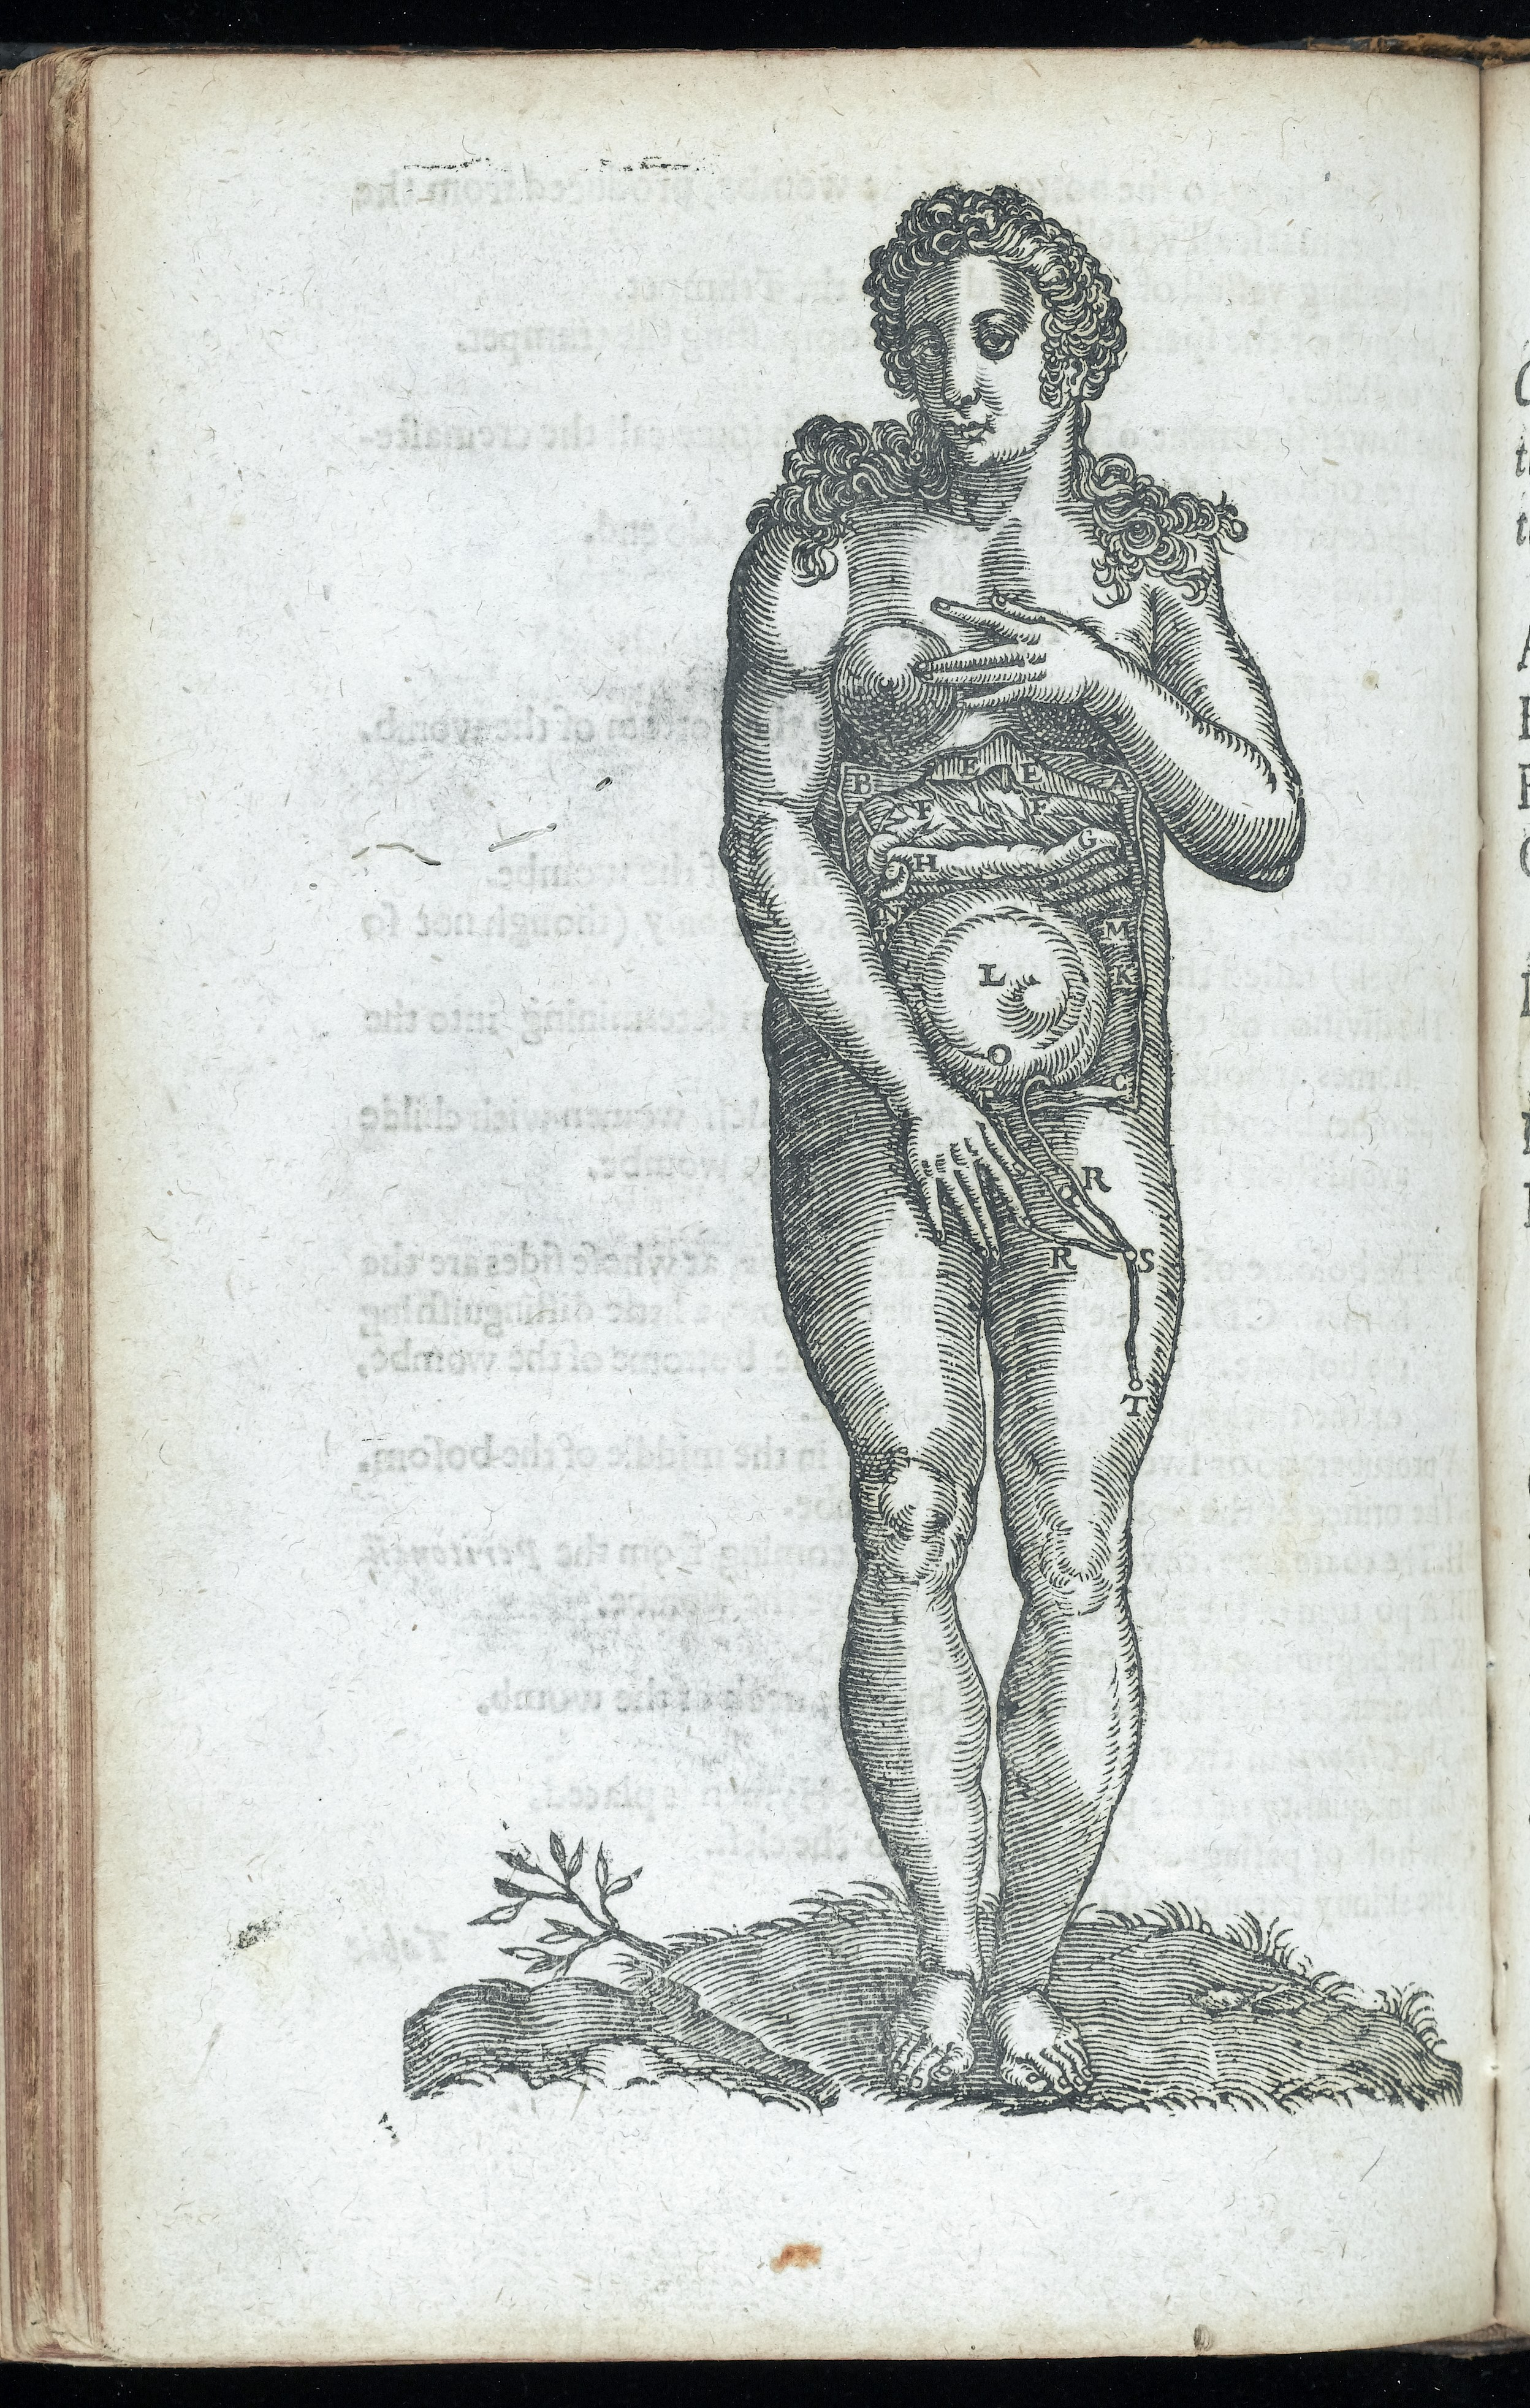 Fileanatomical Illustration Of A Pregnant Woman Wellcome L0046458